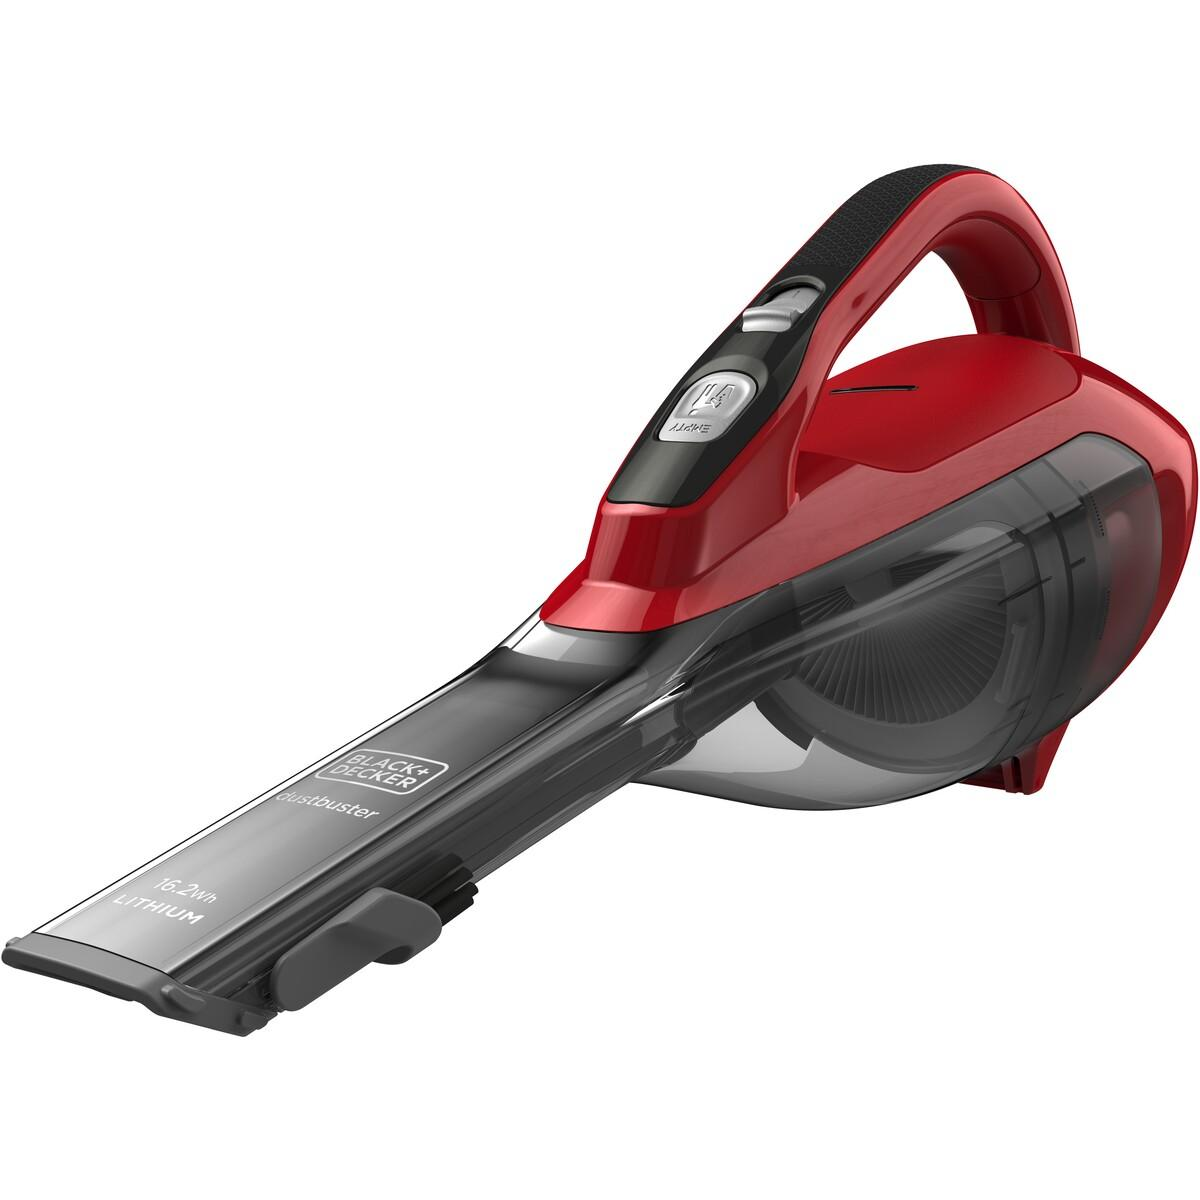 Black & Decker 10.8V Lithium-Ion Dustbuster – Red